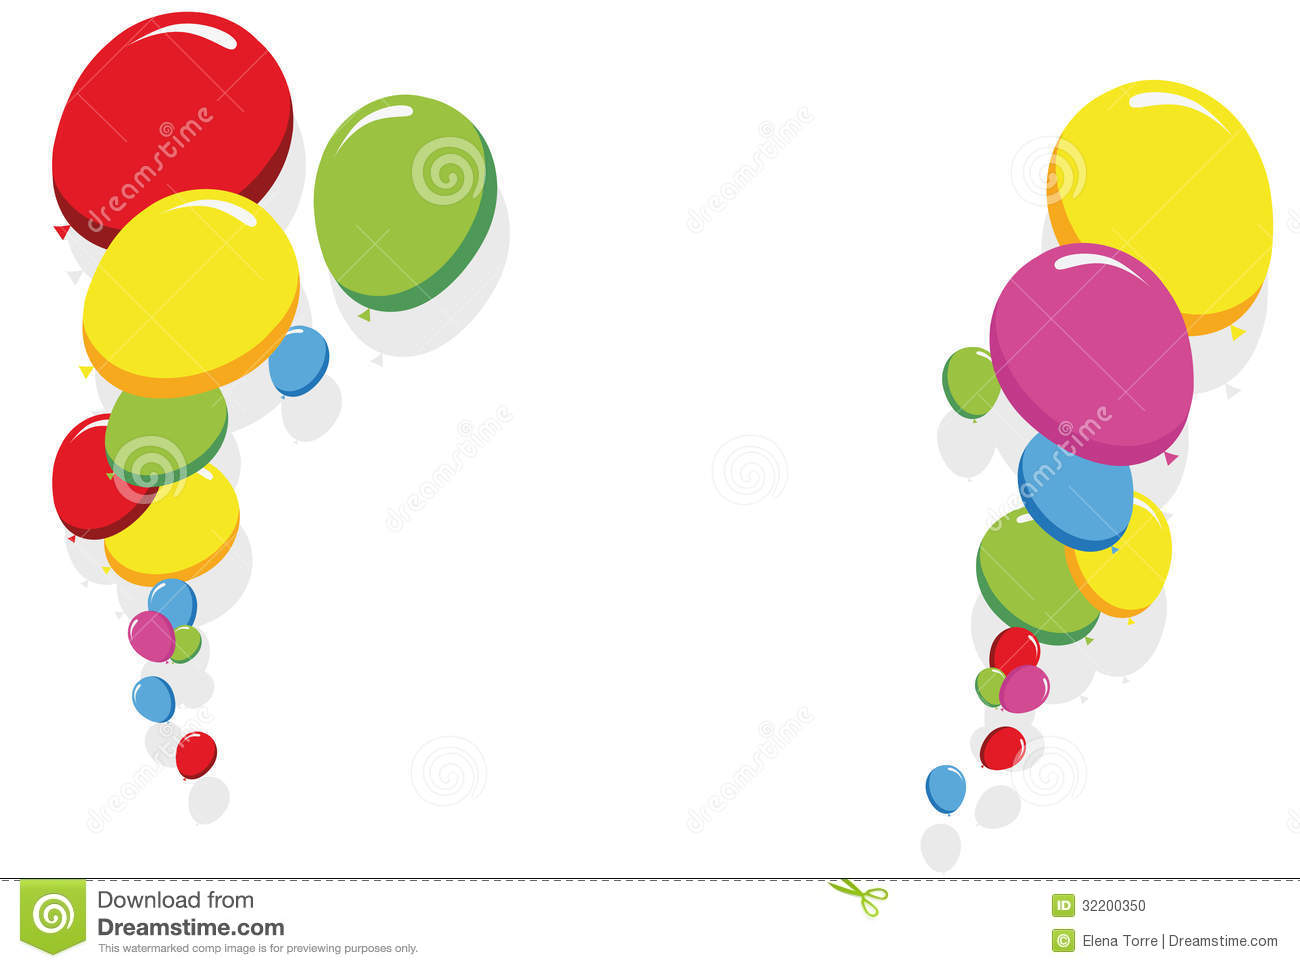 Balloon birthday border clipart black and white high res picture transparent library Balloon Border Clipart | Free download best Balloon Border Clipart ... picture transparent library